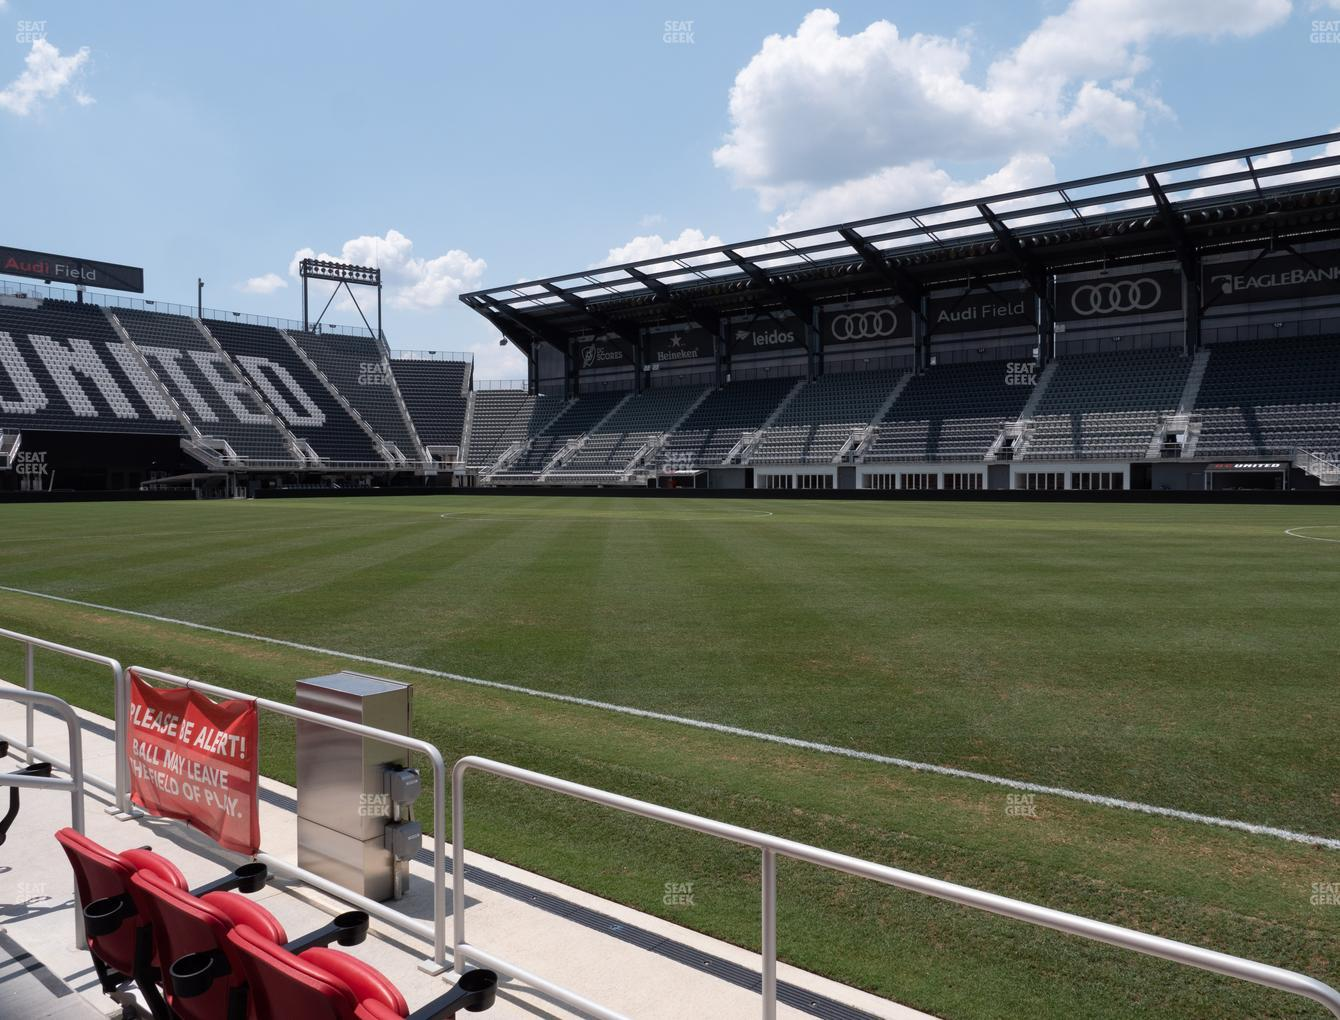 D.C. United at Audi Field Field 3 View